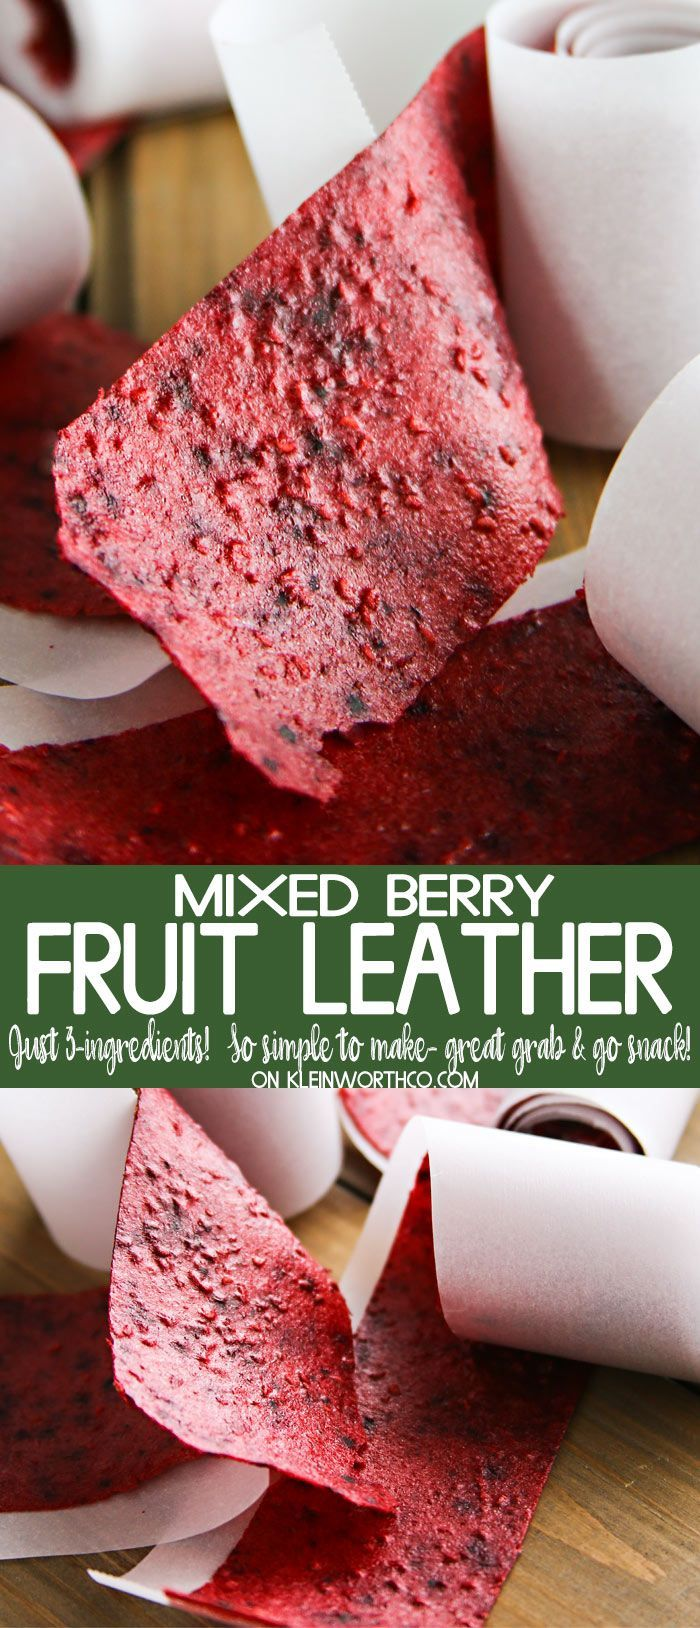 Mixed Berry Fruit Leather is simple to make with just 3 ingredients. Perfect for picnics, beach days road trips or back to school snacks. Easy & delicious! Mixed Berry Fruit Leather is simple to make with just 3 ingredients. Perfect for picnics, beach days road trips or back to school snacks. Easy & delicious! AD